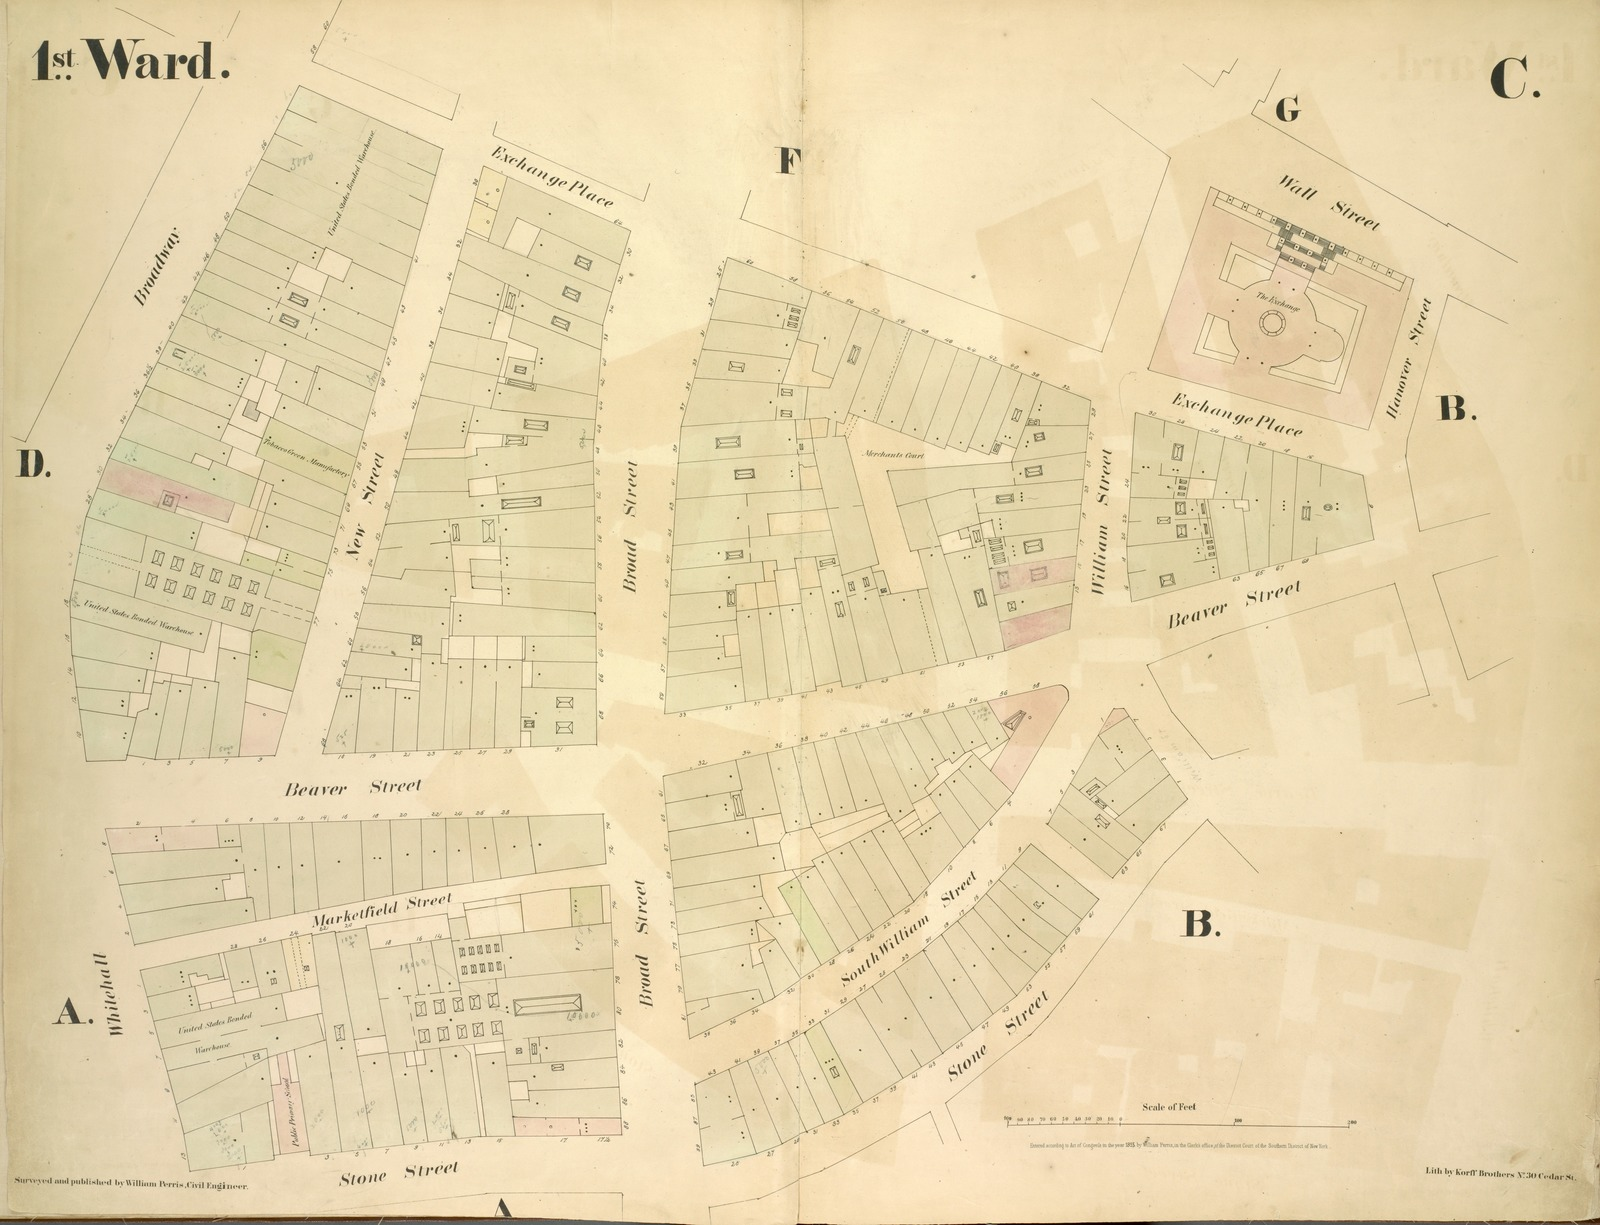 [1st Ward. Plate C: Map bounded by Exchange Place, William Street, Wall Street, Hanover Street, Beaver Street, Stone Street, Whitehall, Broadway; Including New Street, Broad Street, Marketfield Street, South William Street]